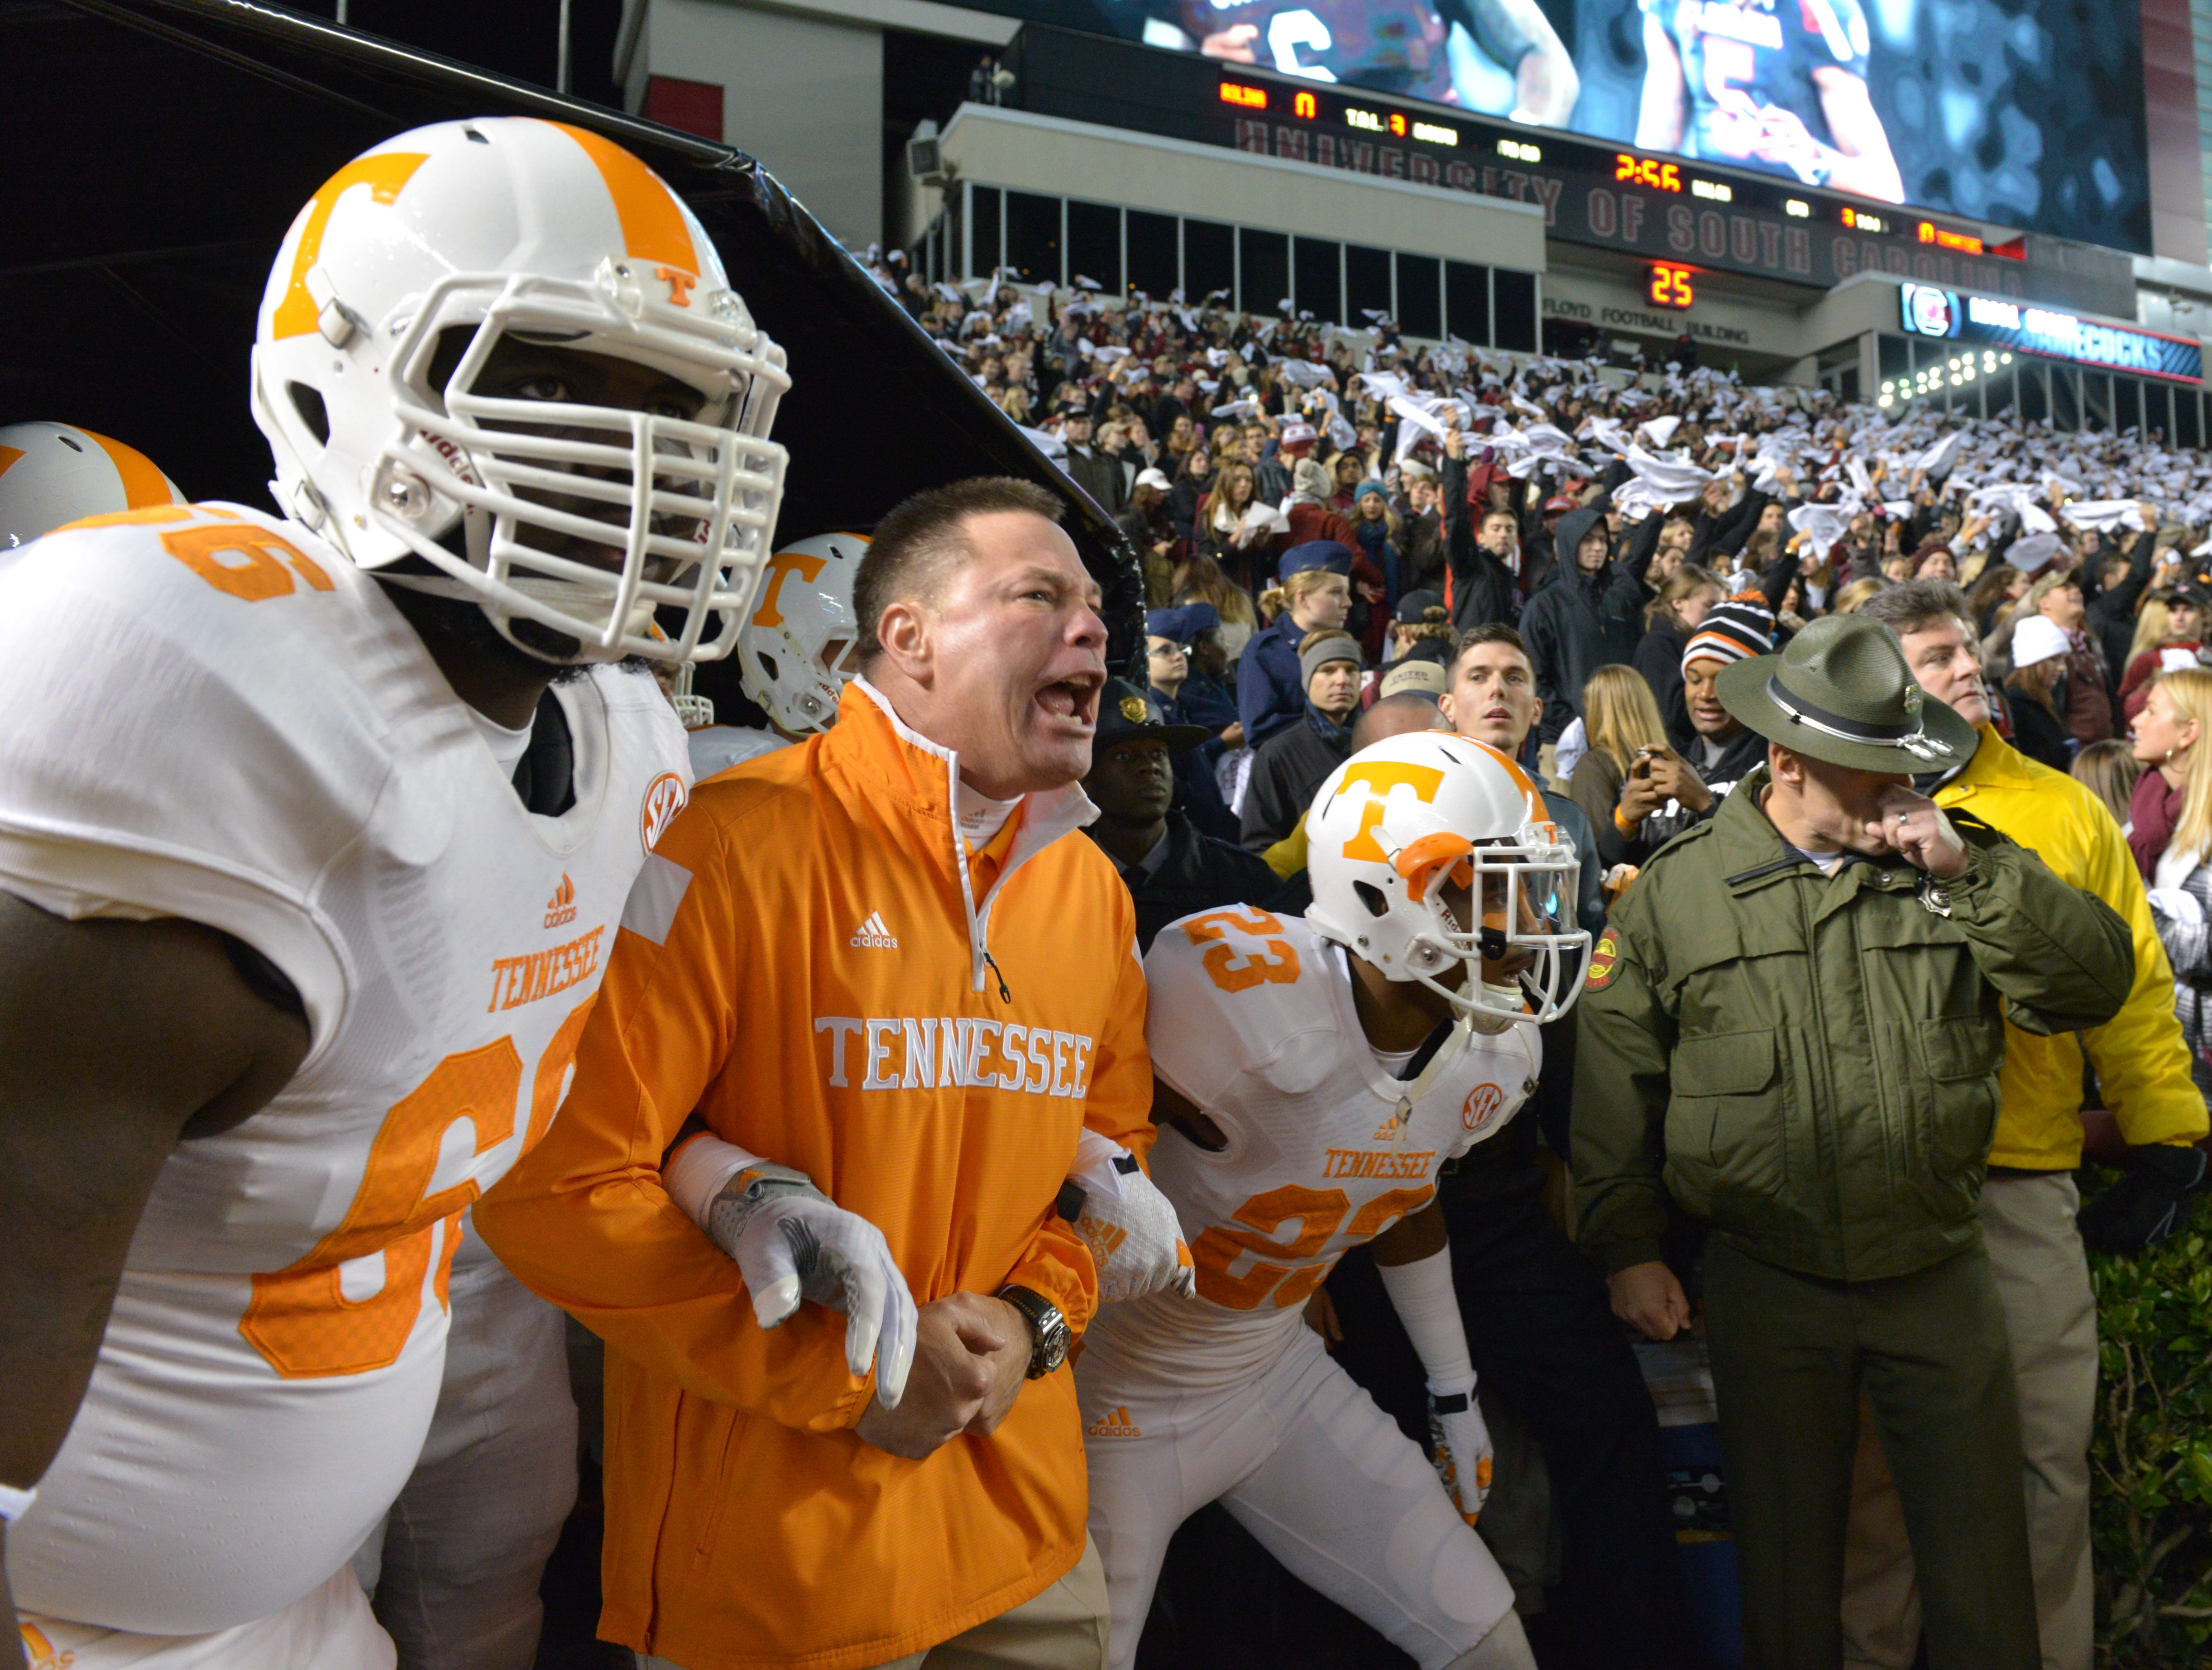 Tennessee coach Butch Jones ready to take the field  against South Carolina in Williams-Brice Stadium Saturday, Nov. 1, 2014 in Columbia, S.C.